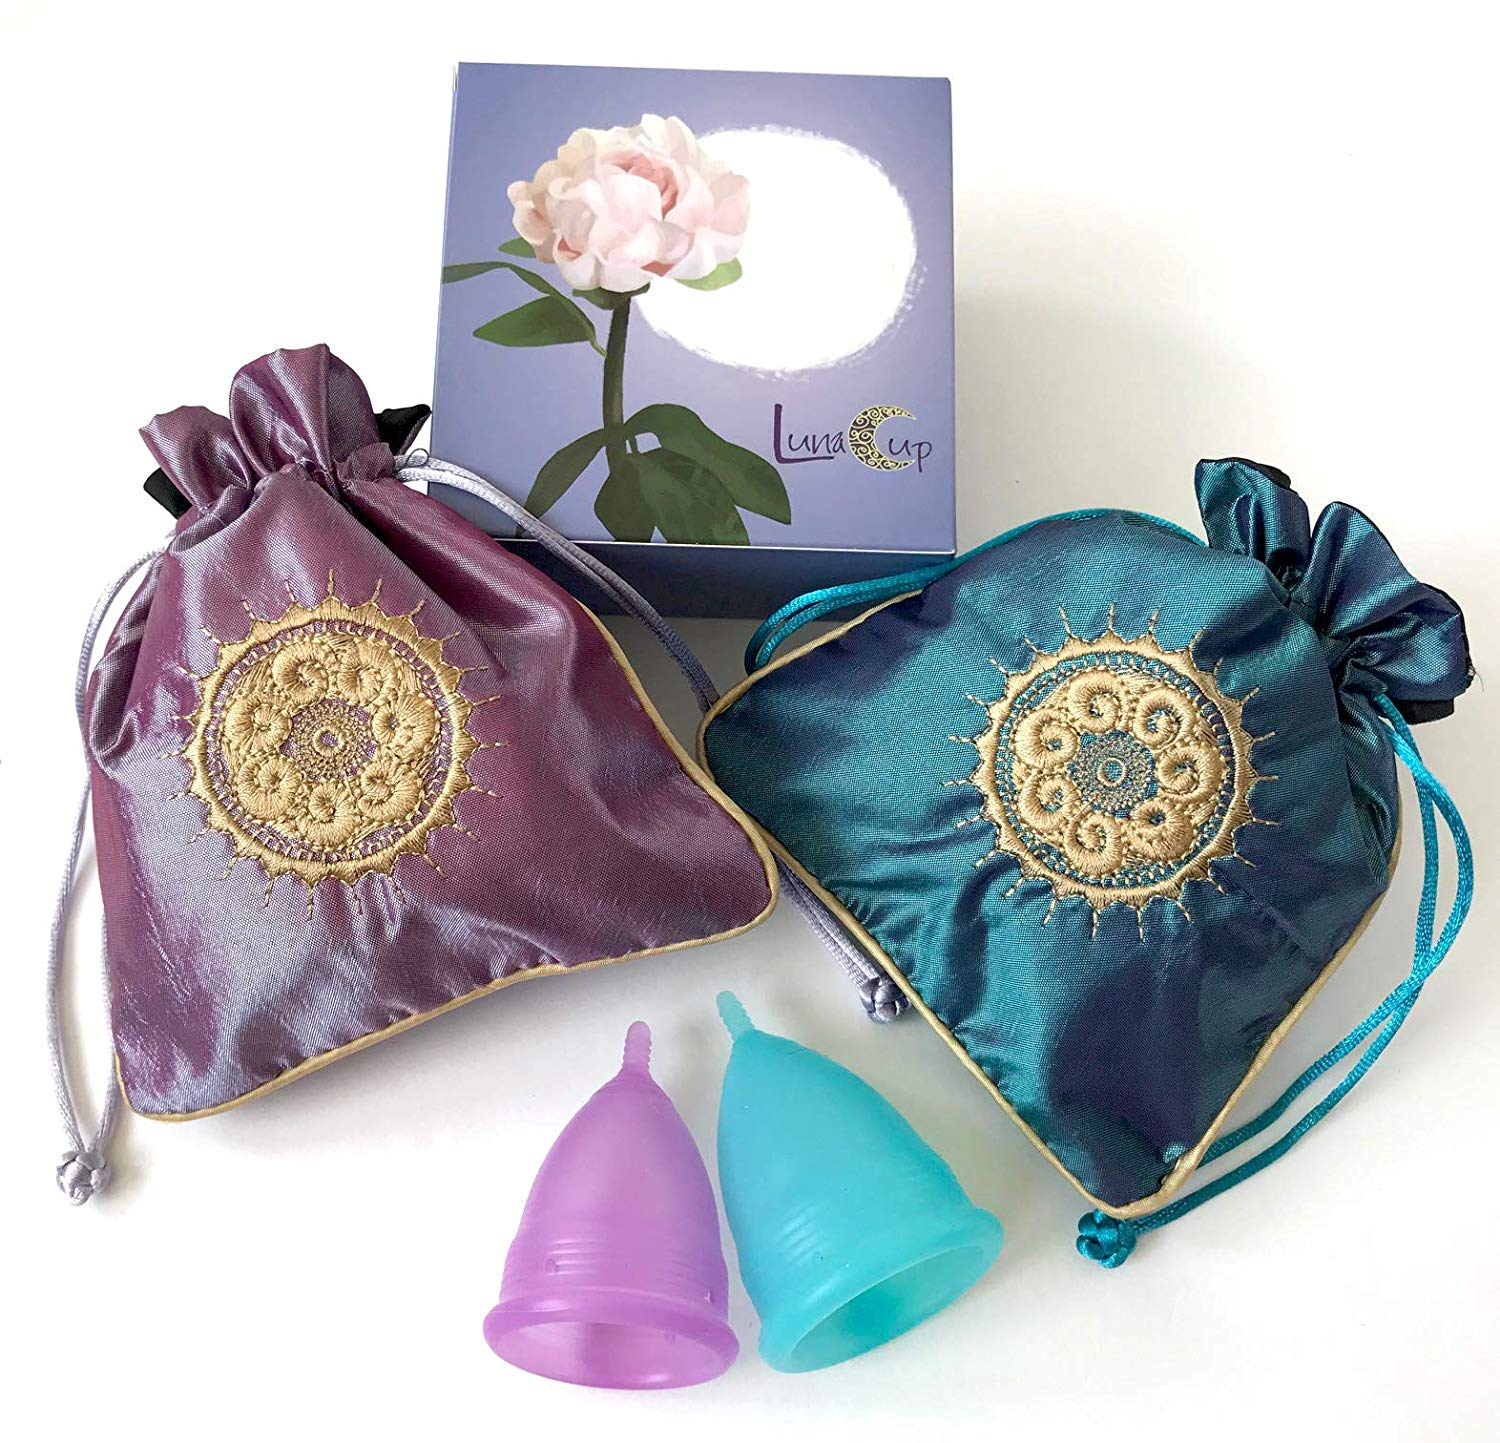 Luna Menstrual Cup set of 2 from Amazon